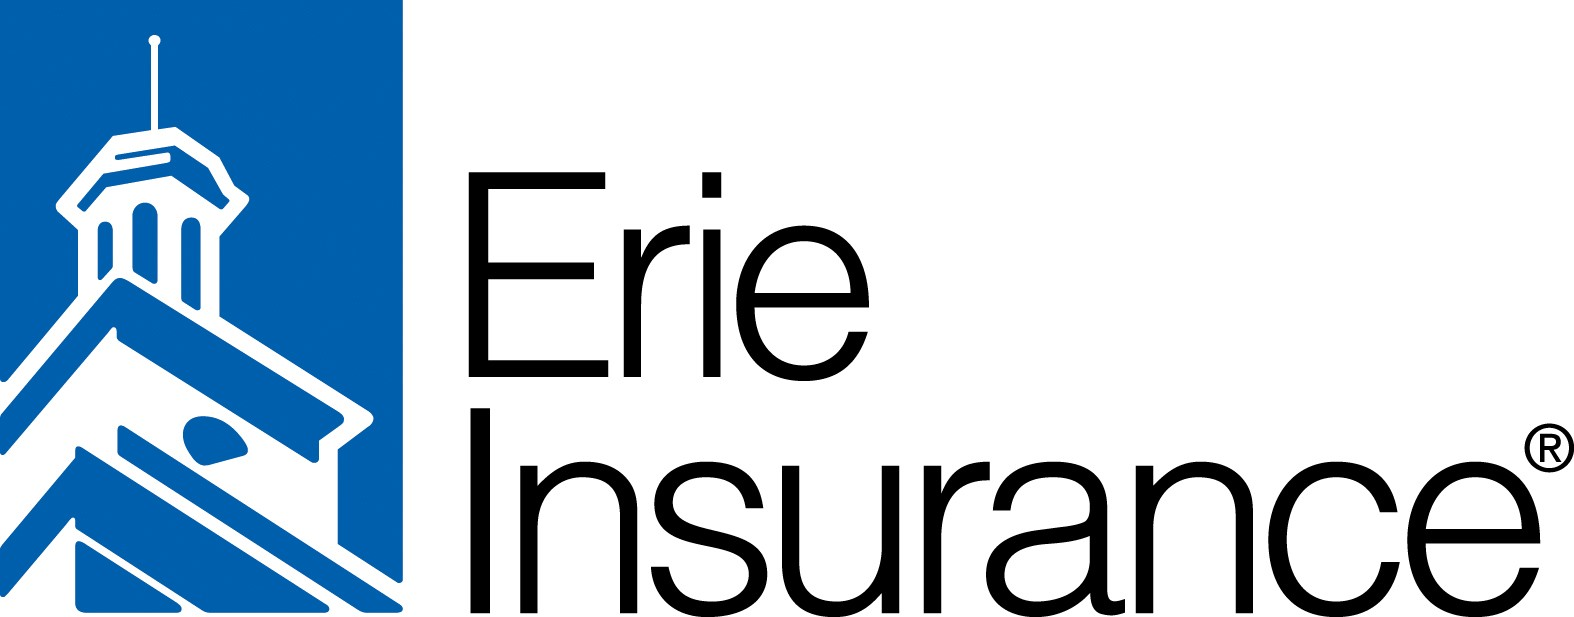 Health Insurance Quotes Nj Finally Online Nj Home Insurance Quote Deals In Real Time